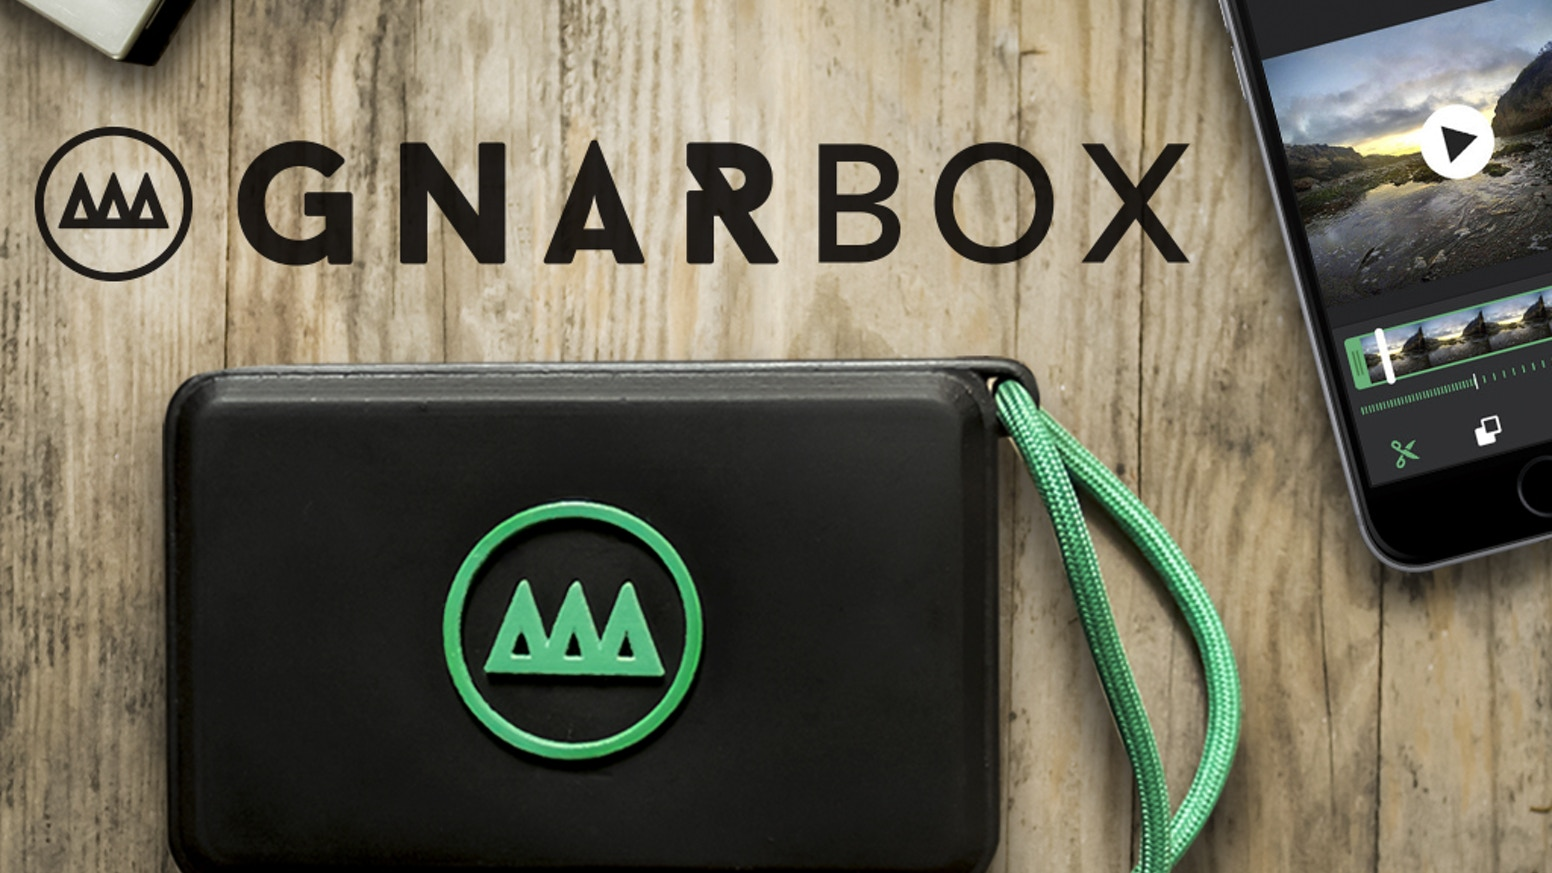 Gnarbox Edit Share Hd Footage In Seconds Laptop Free By Skun Pcb Set 7500 5 Kickstarter